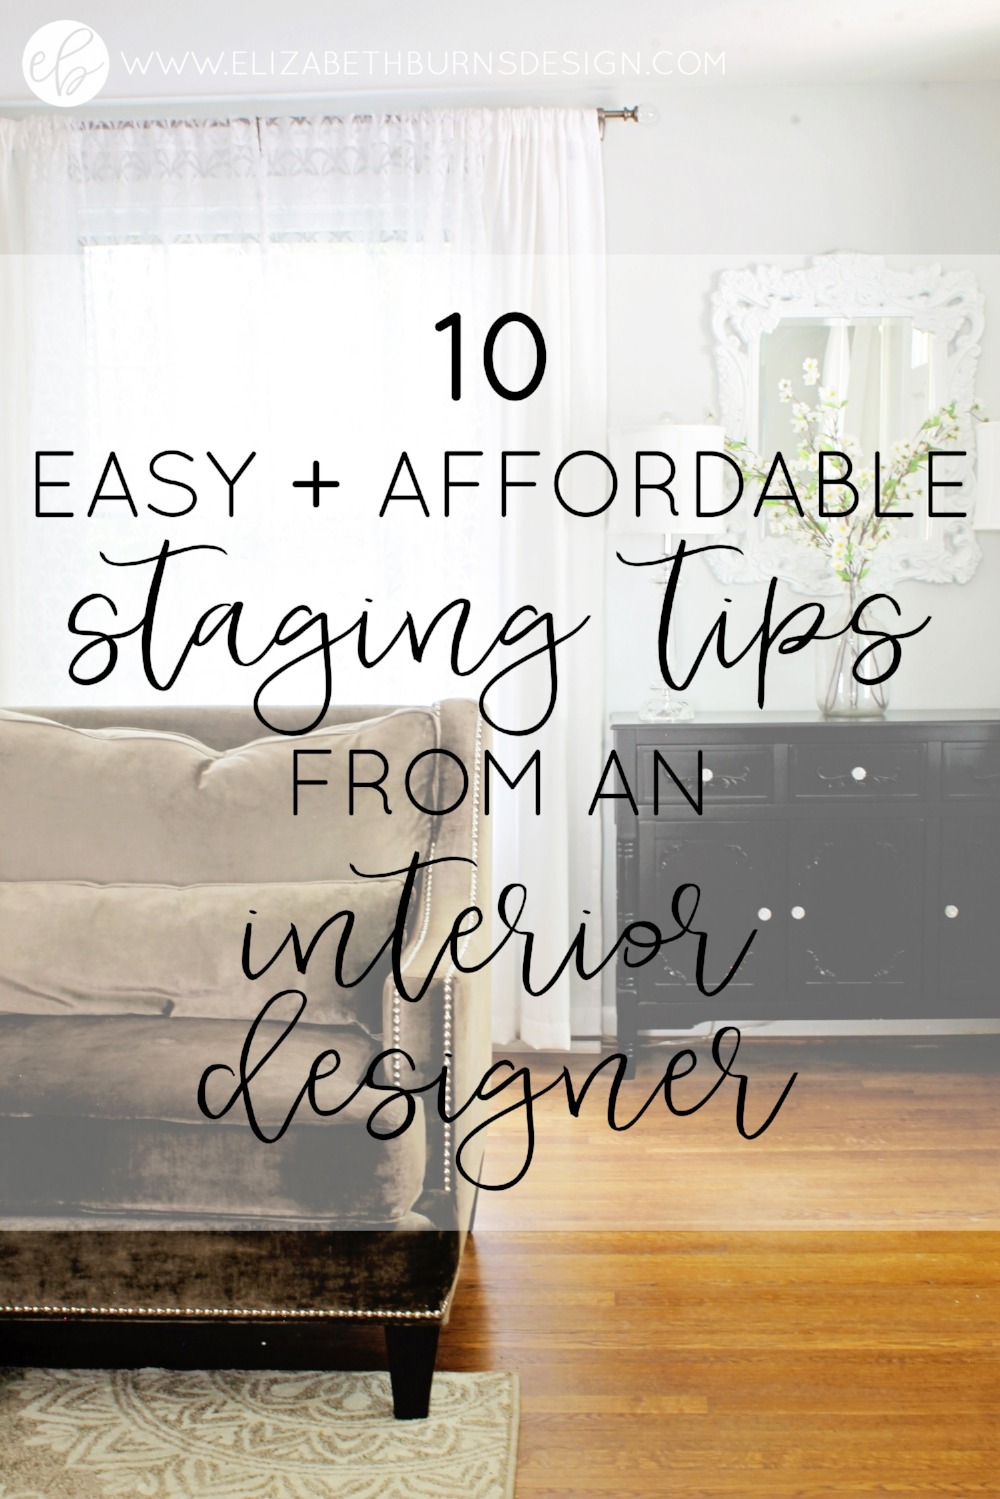 Elizabeth Burns Design | 10 Easy and Affordable Real Estate Staging Tips from an Interior Designer